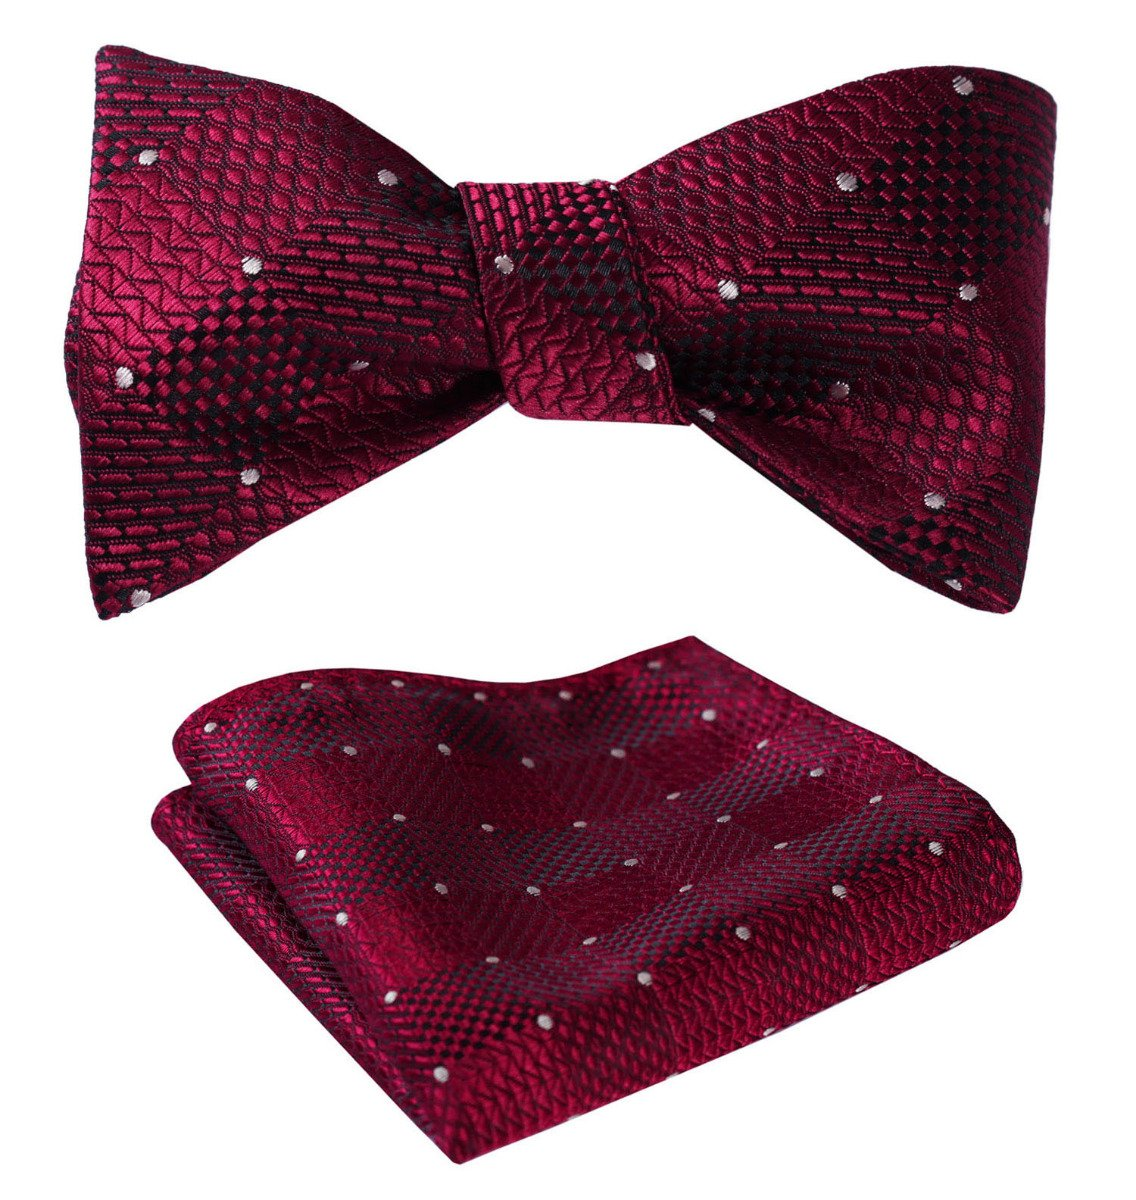 HISDERN Men's Paisley Floral Jacquard Woven Party Self Bow Tie Set BF115RS-2